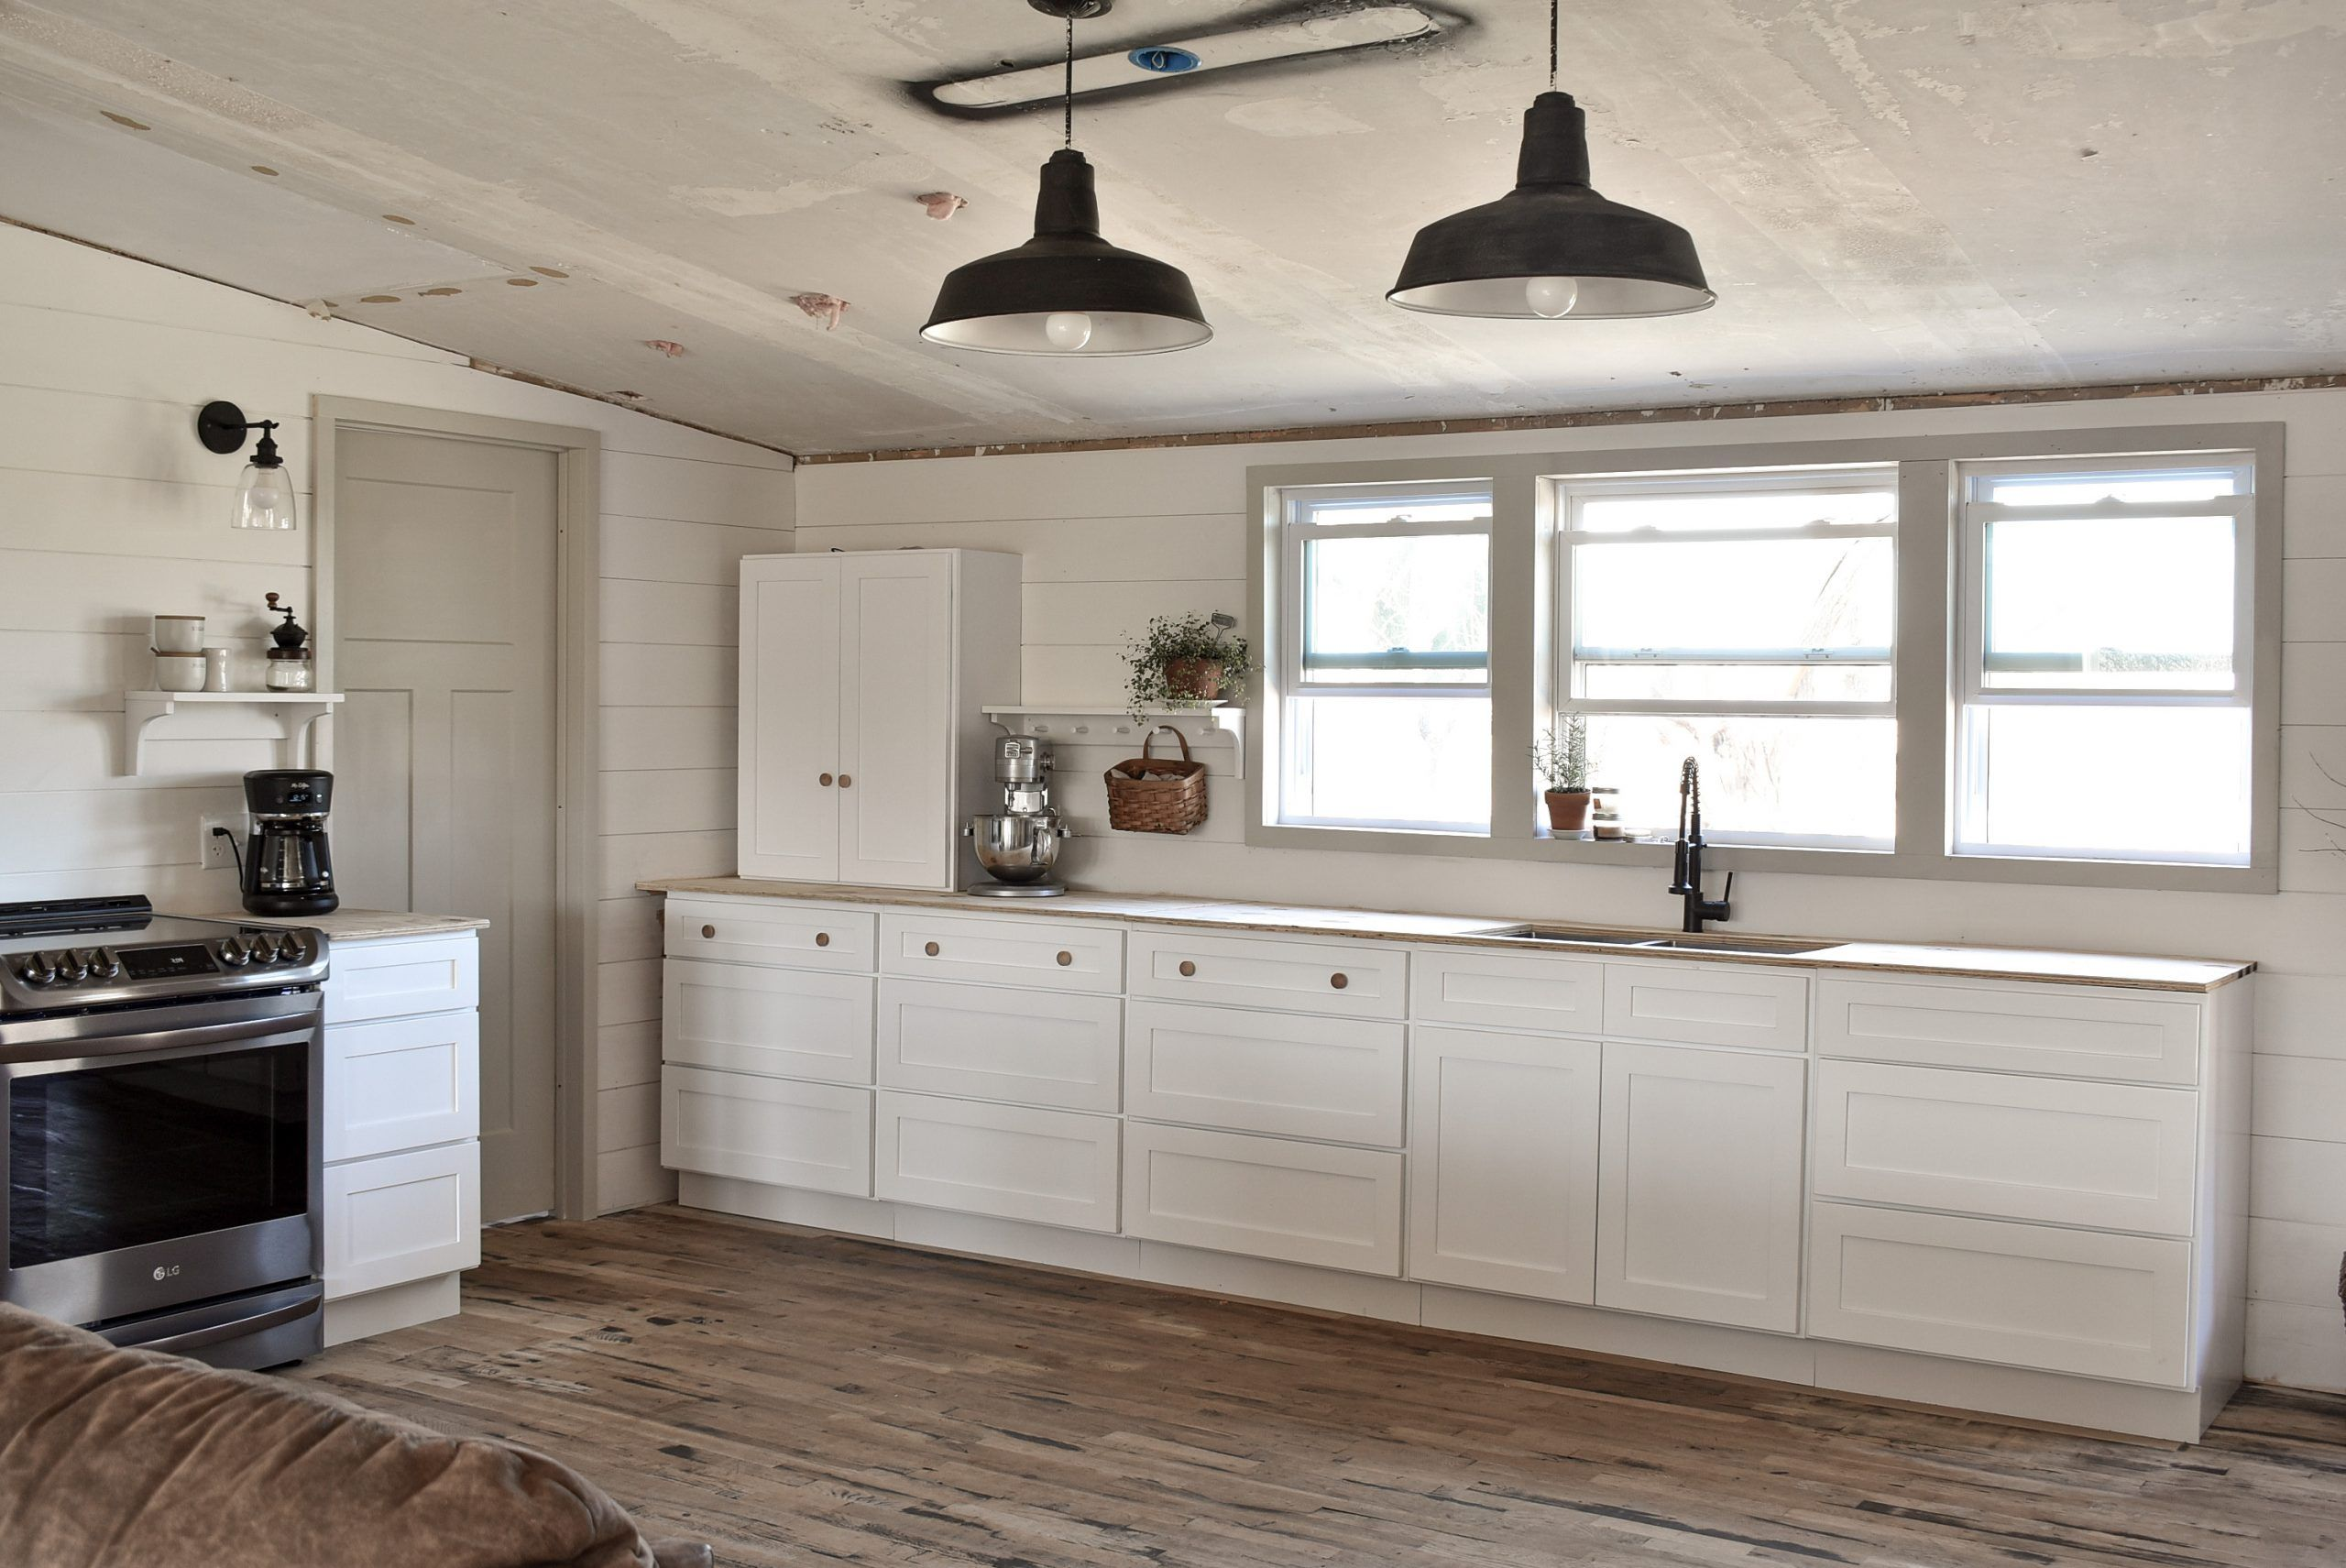 Kitchen Cabinet Remodel On A Budget Rocky Hedge Farm In 2020 Mobile Home Kitchen Cabinets Mobile Home Kitchens Cabinet Remodel